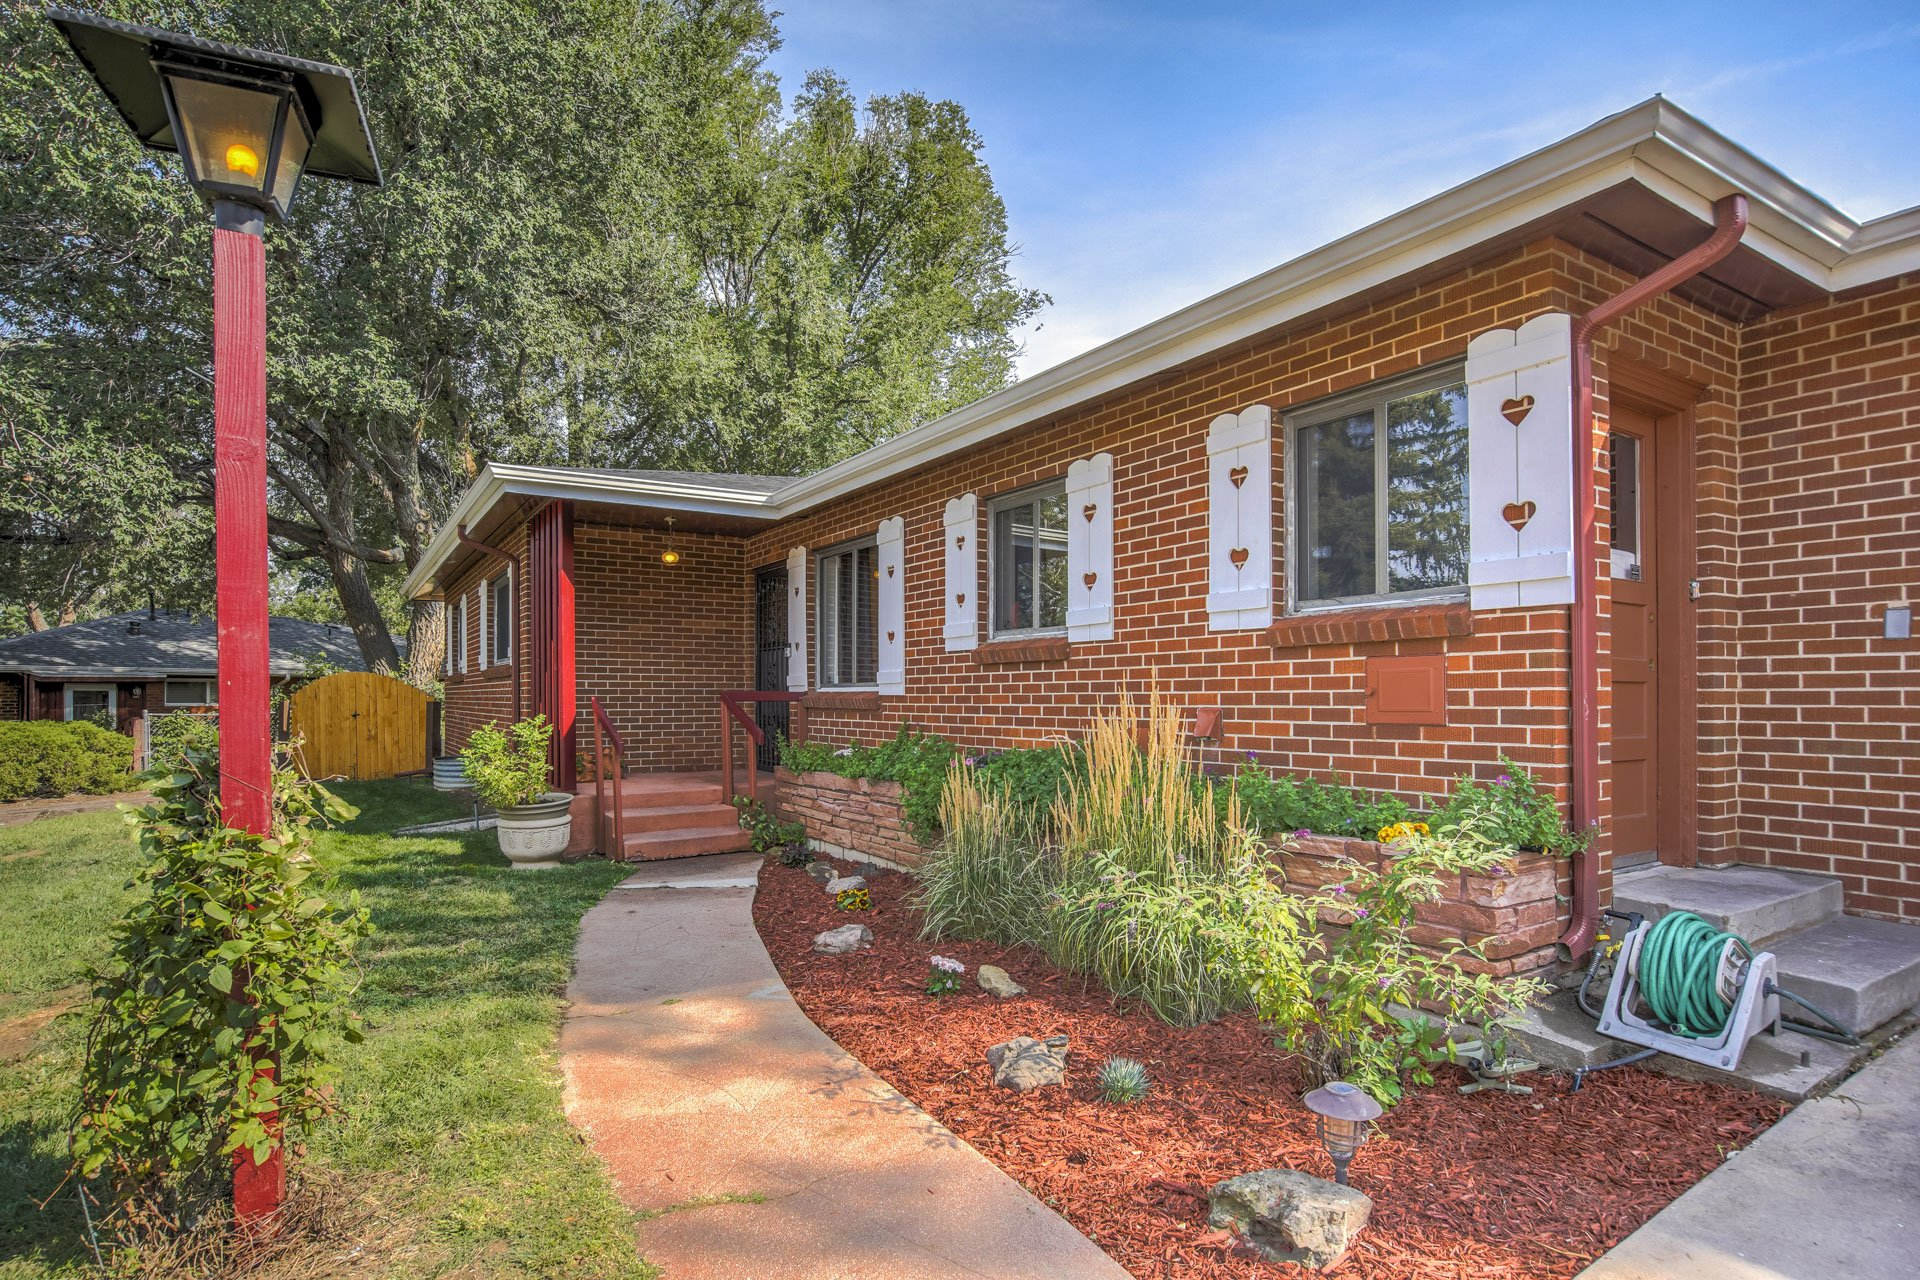 Garden and brick in front of Colorado Springs home for sale